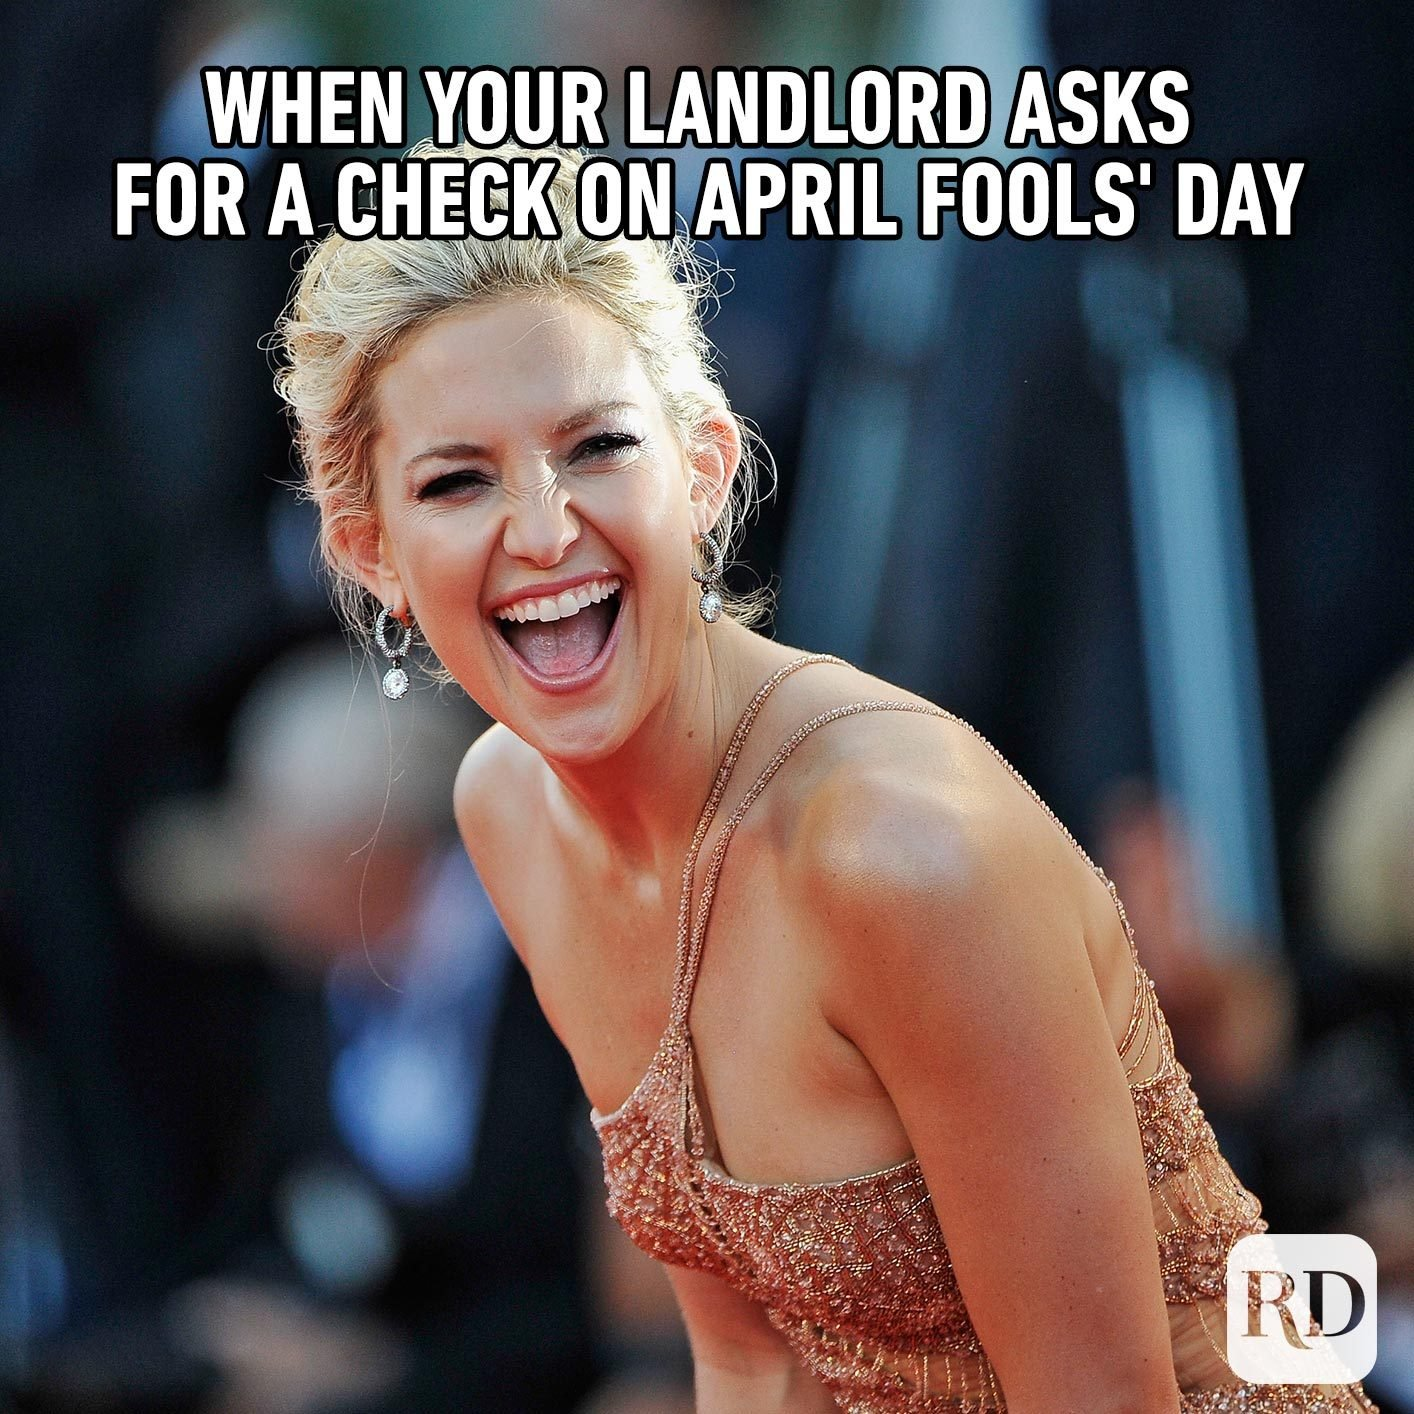 Woman laughing. Meme text: When your landlord asks for a check on April Fools' Day